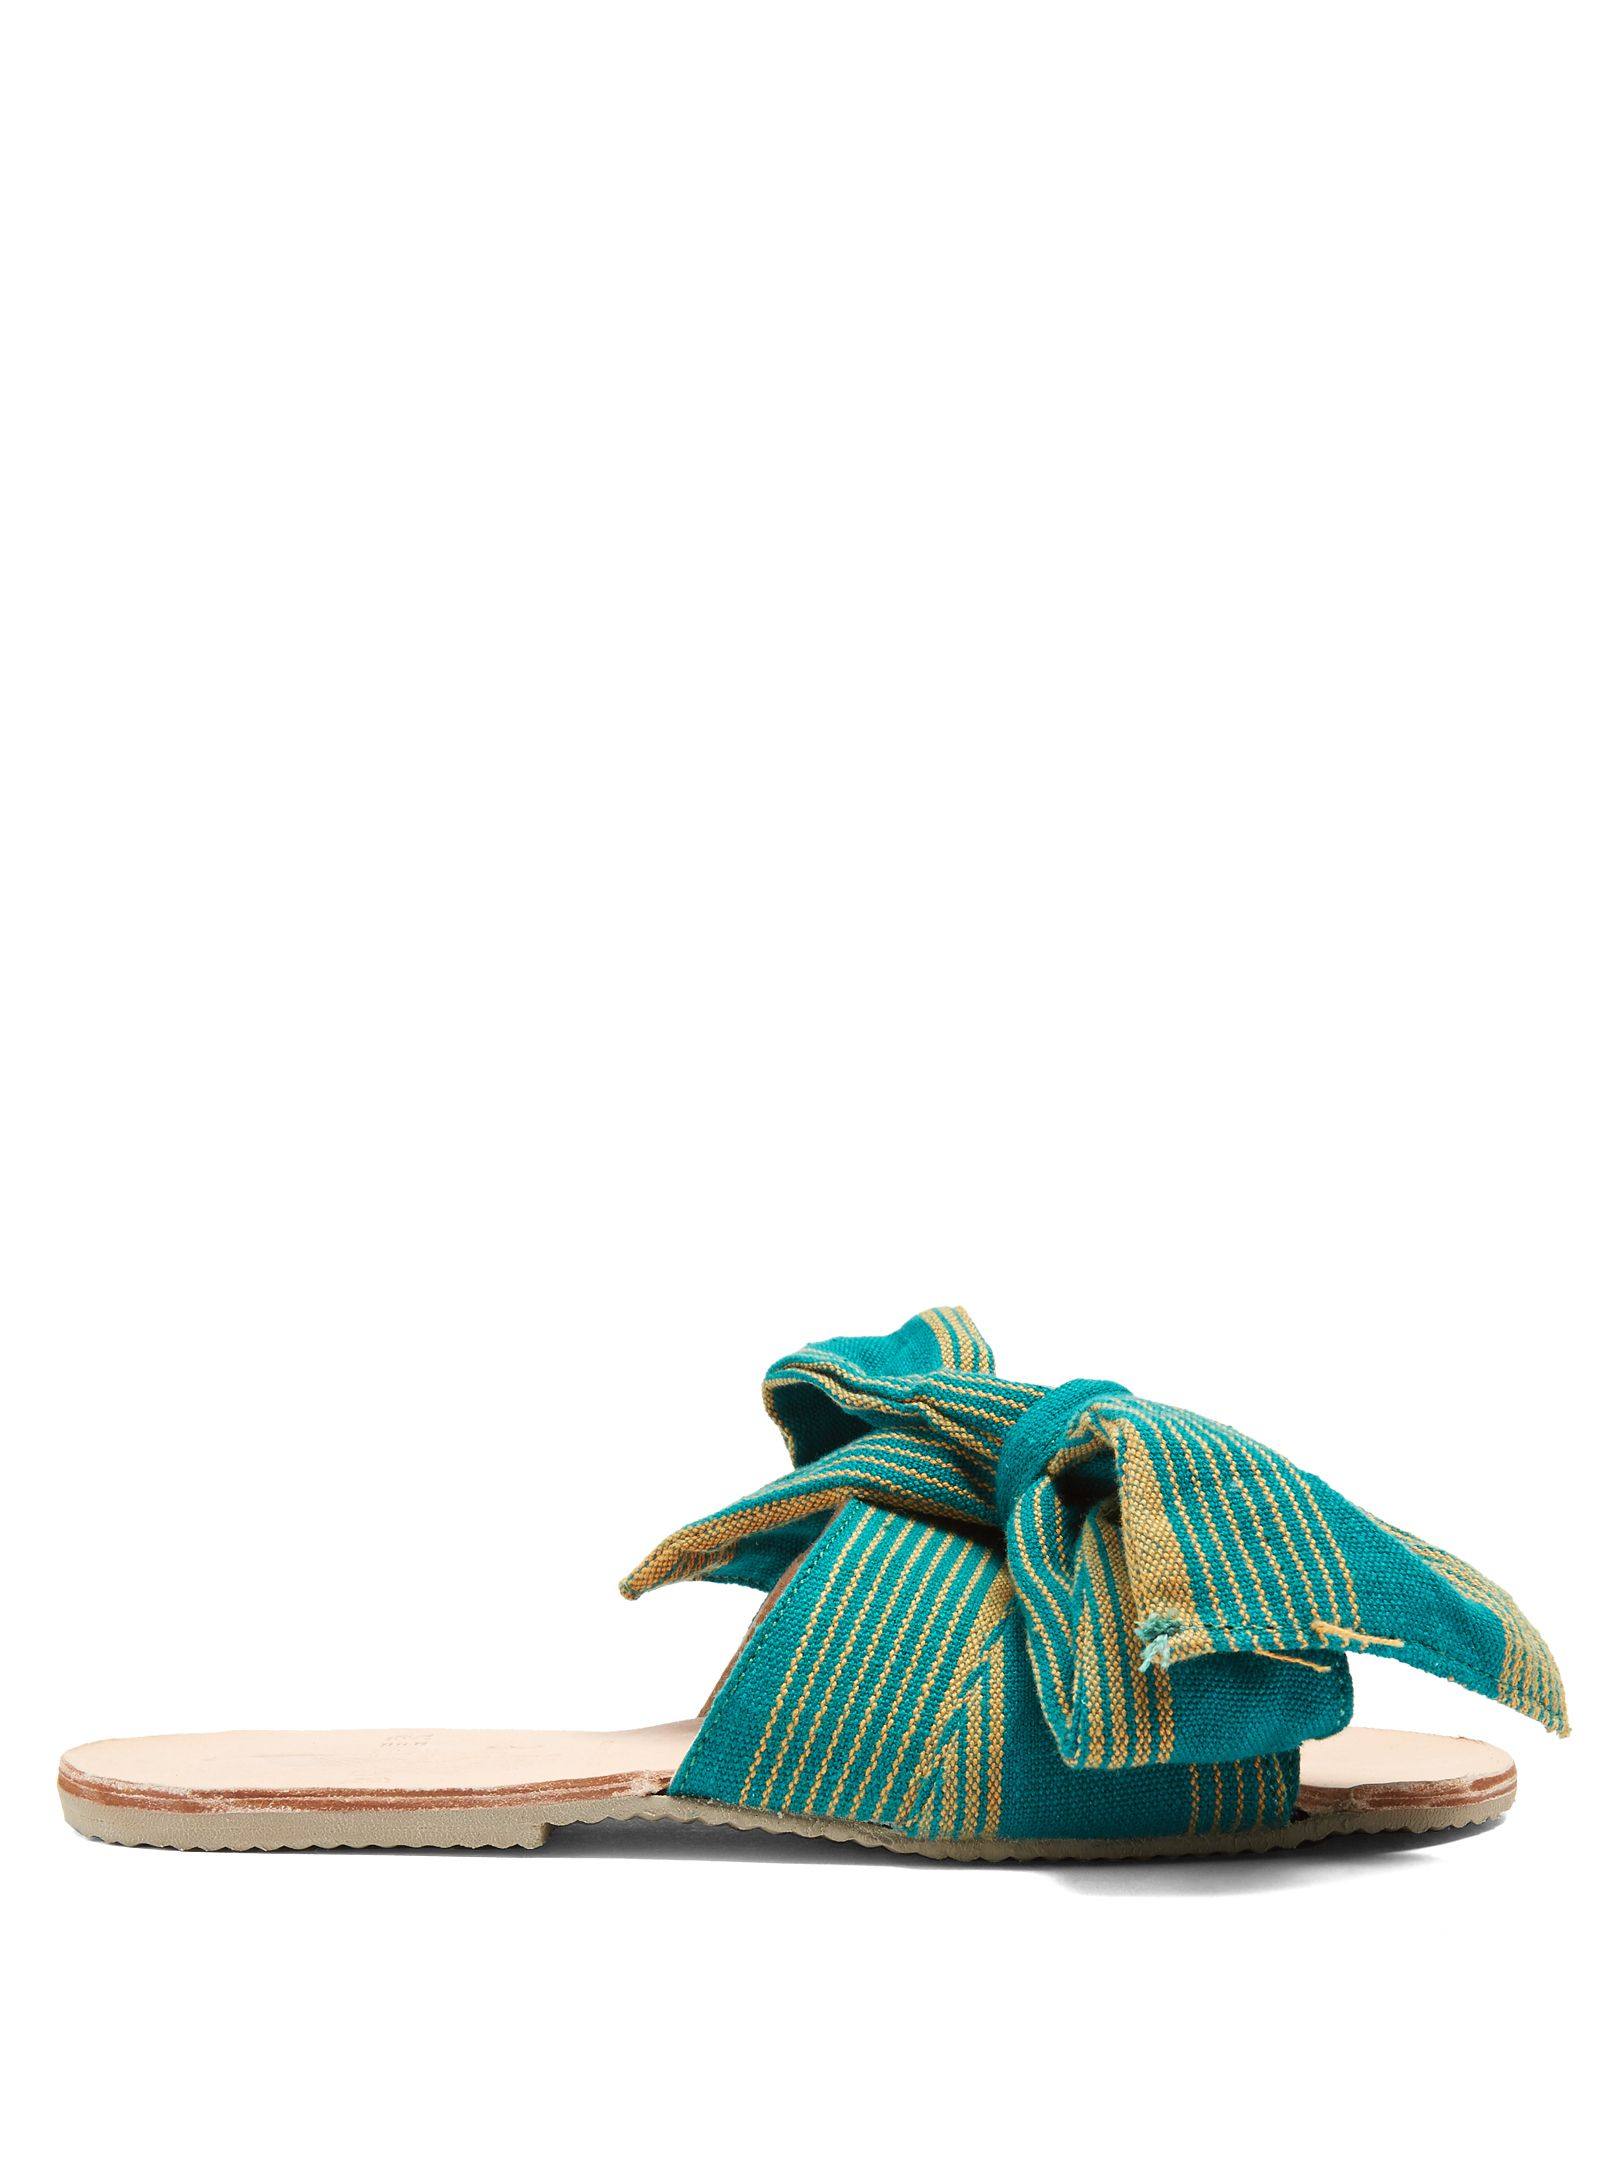 BROTHER VELLIES Burkina striped-bow slides Online Cheapest ixYqlAZJ